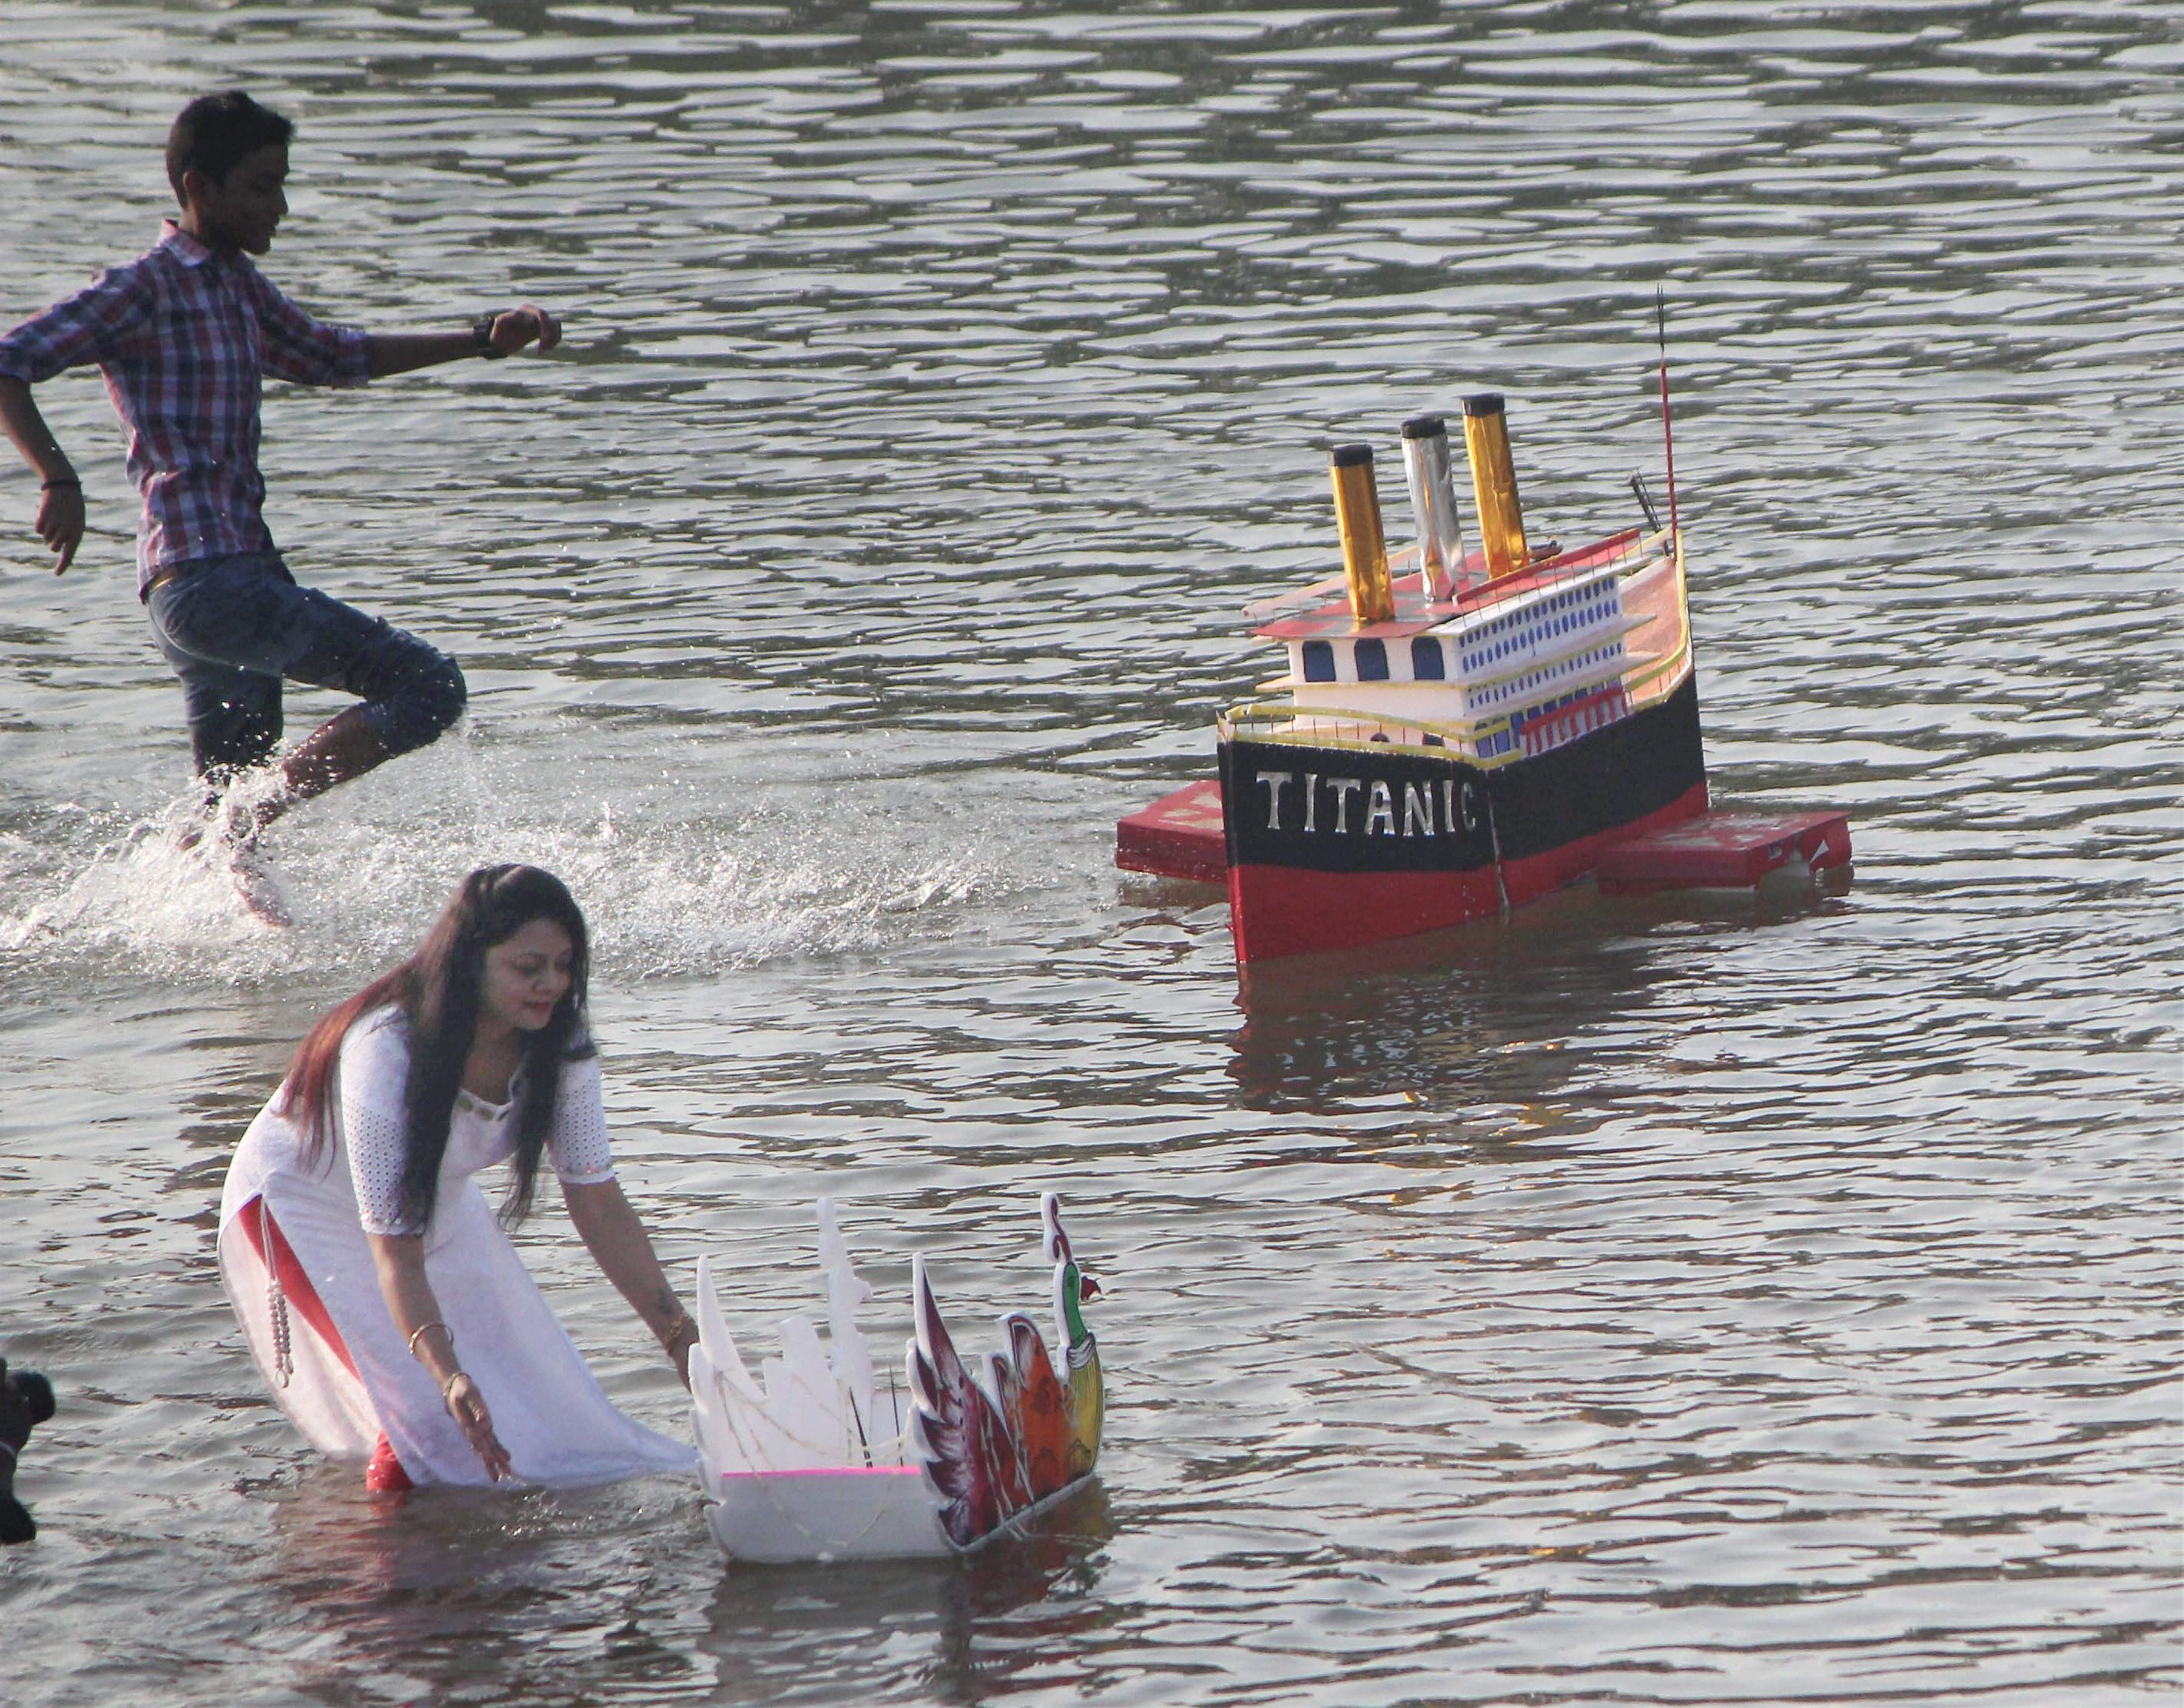 A woman gives her decorative boat a push in Daya river in Bhubaneswar, as part of Karti Purnima celebrations. (Credit: PTI)